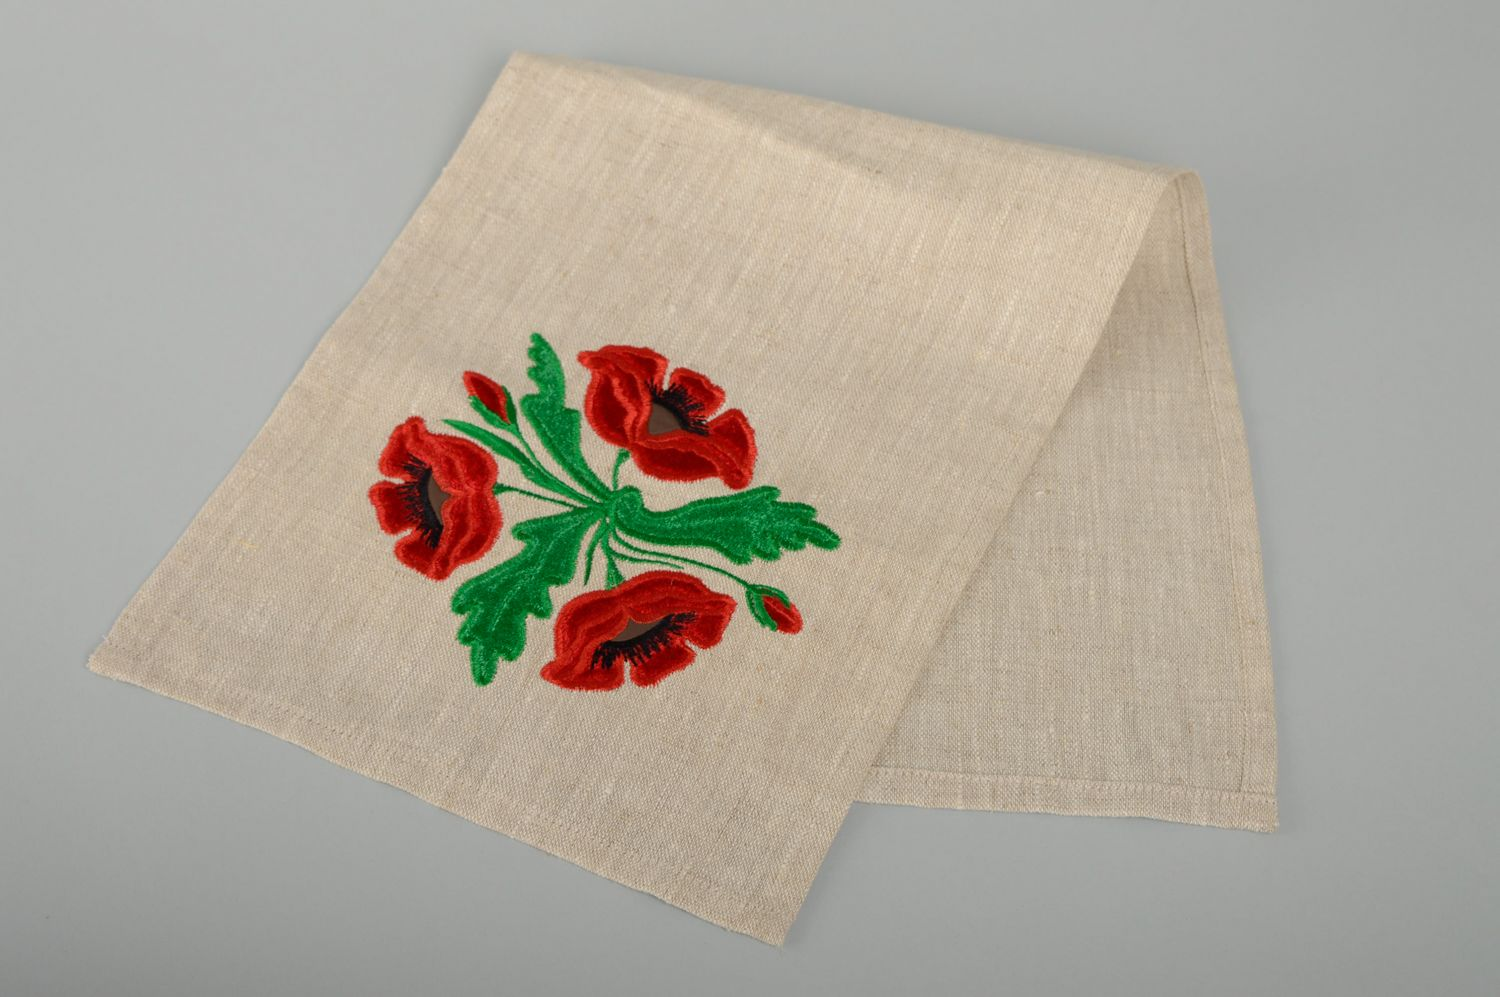 textiles and carpets Napkin table runner with embroidery - MADEheart.com